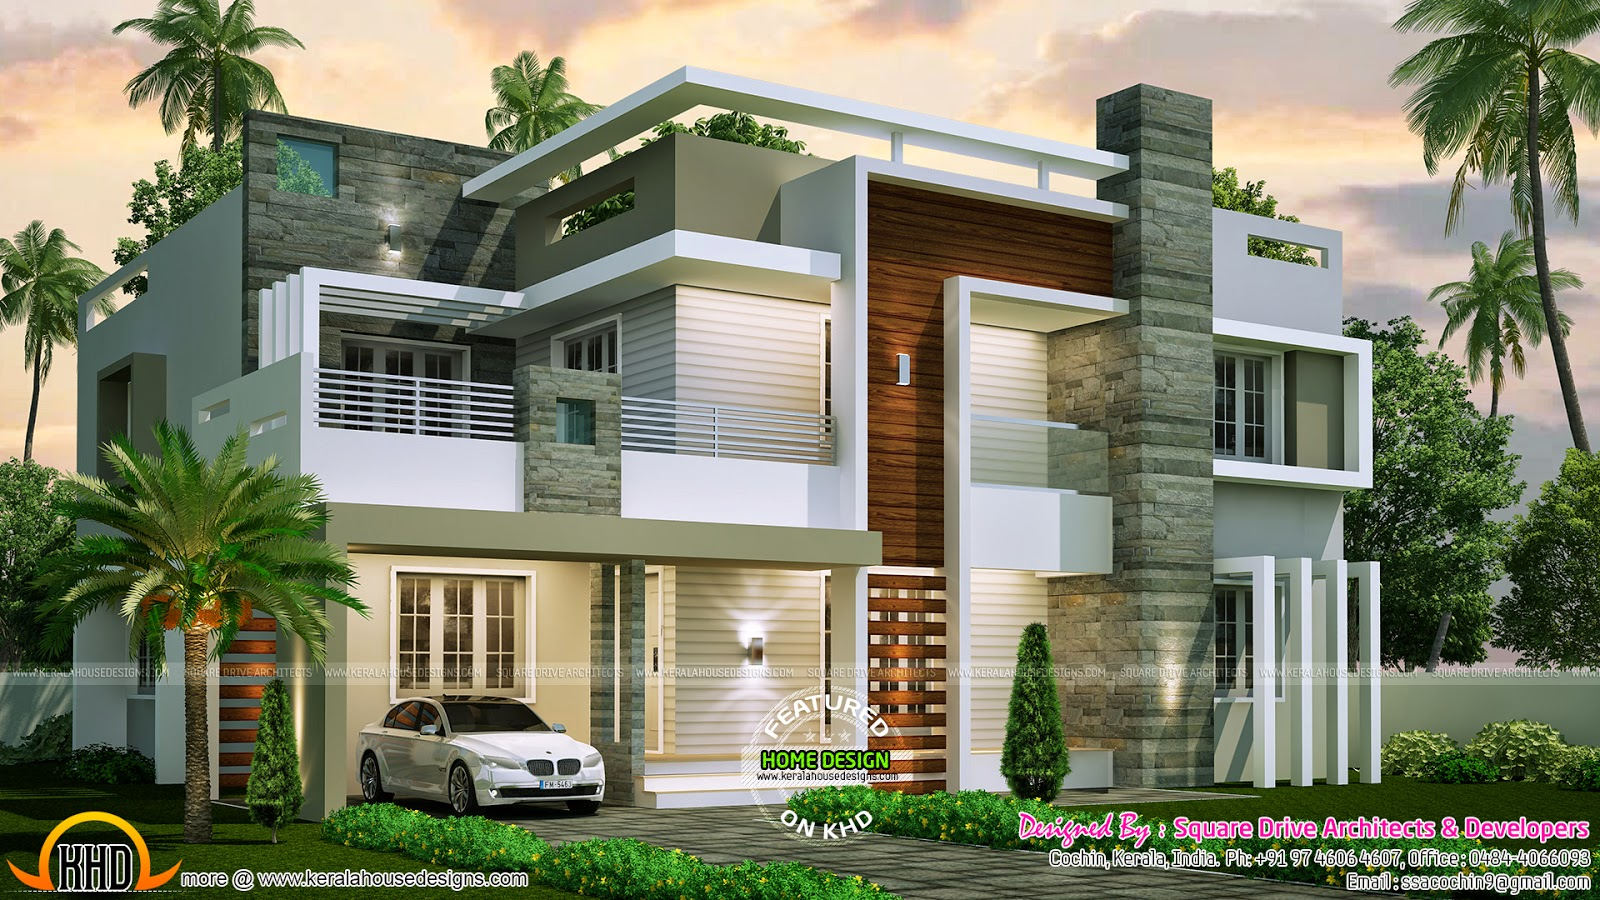 4 bedroom contemporary home design kerala home design for Home design images